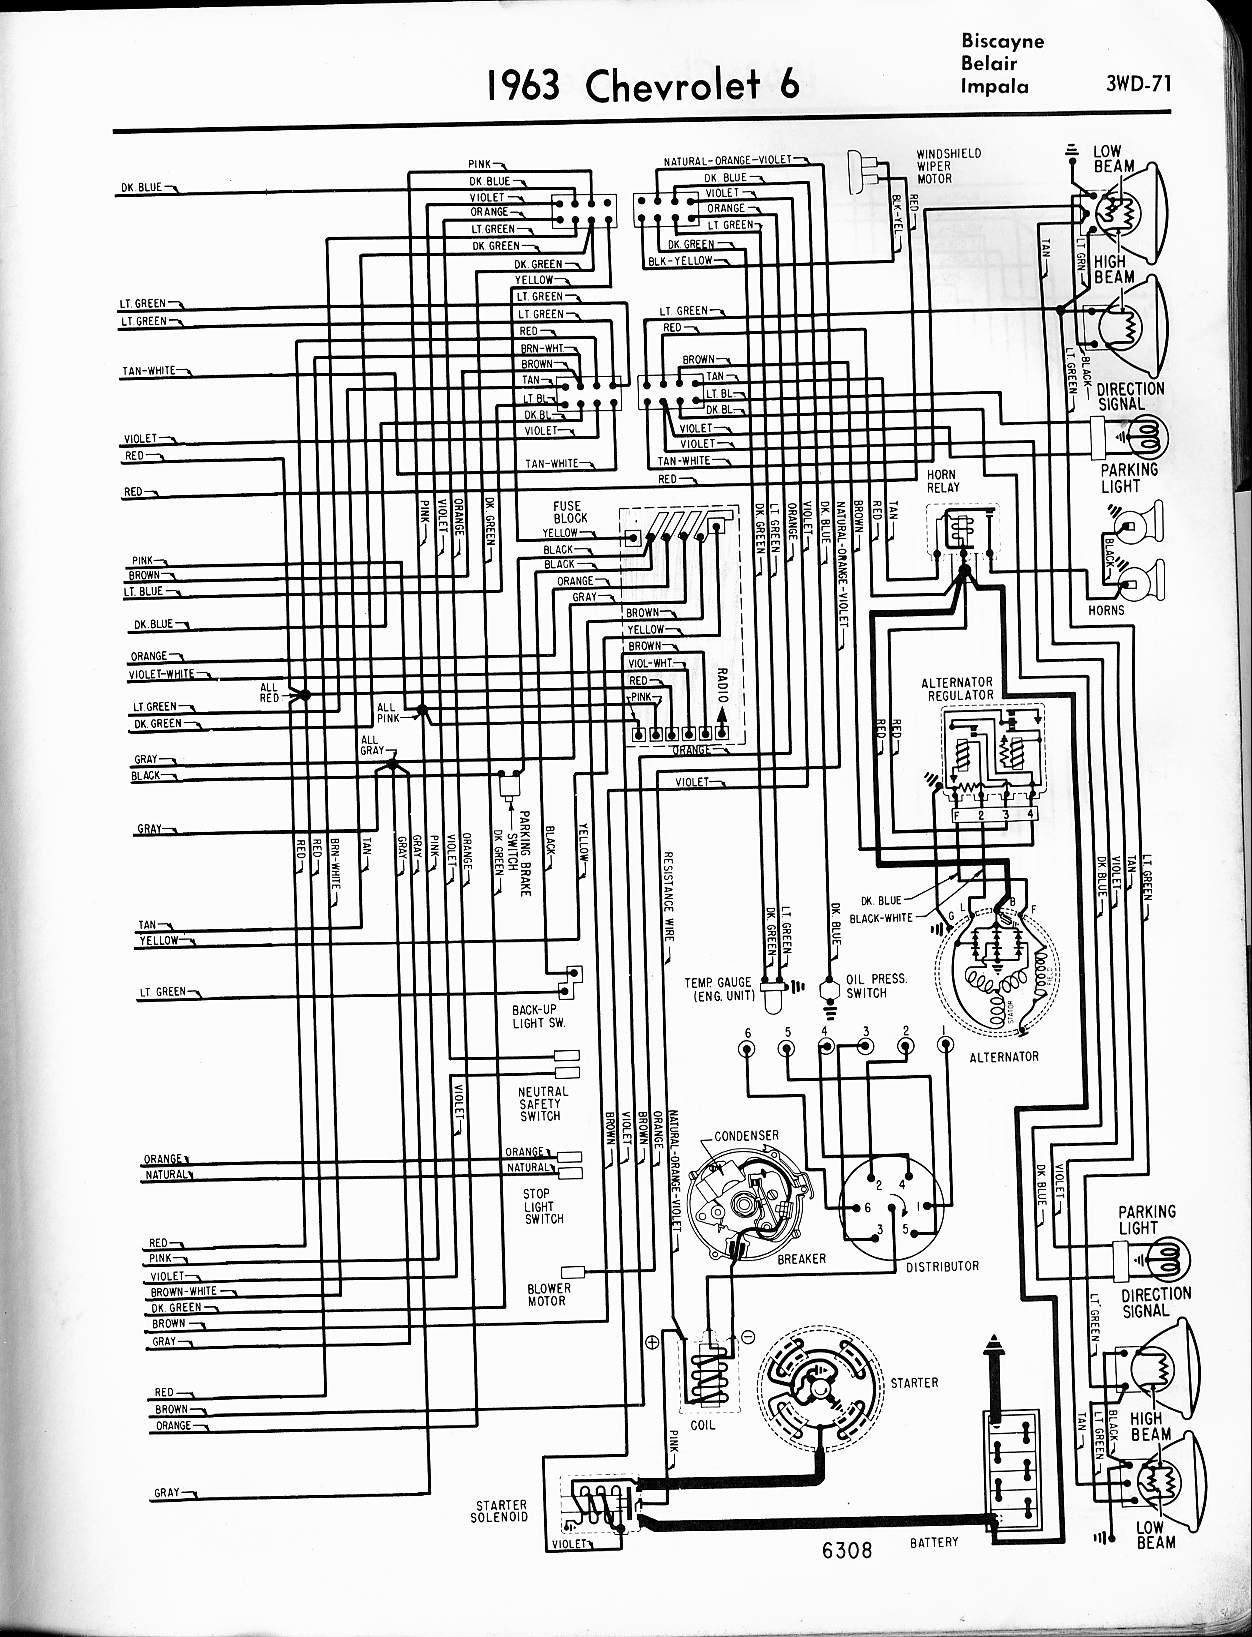 63 Impala Wiring Diagram Another Blog About Ct90 Lifan 57 65 Chevy Diagrams Rh Oldcarmanualproject Com